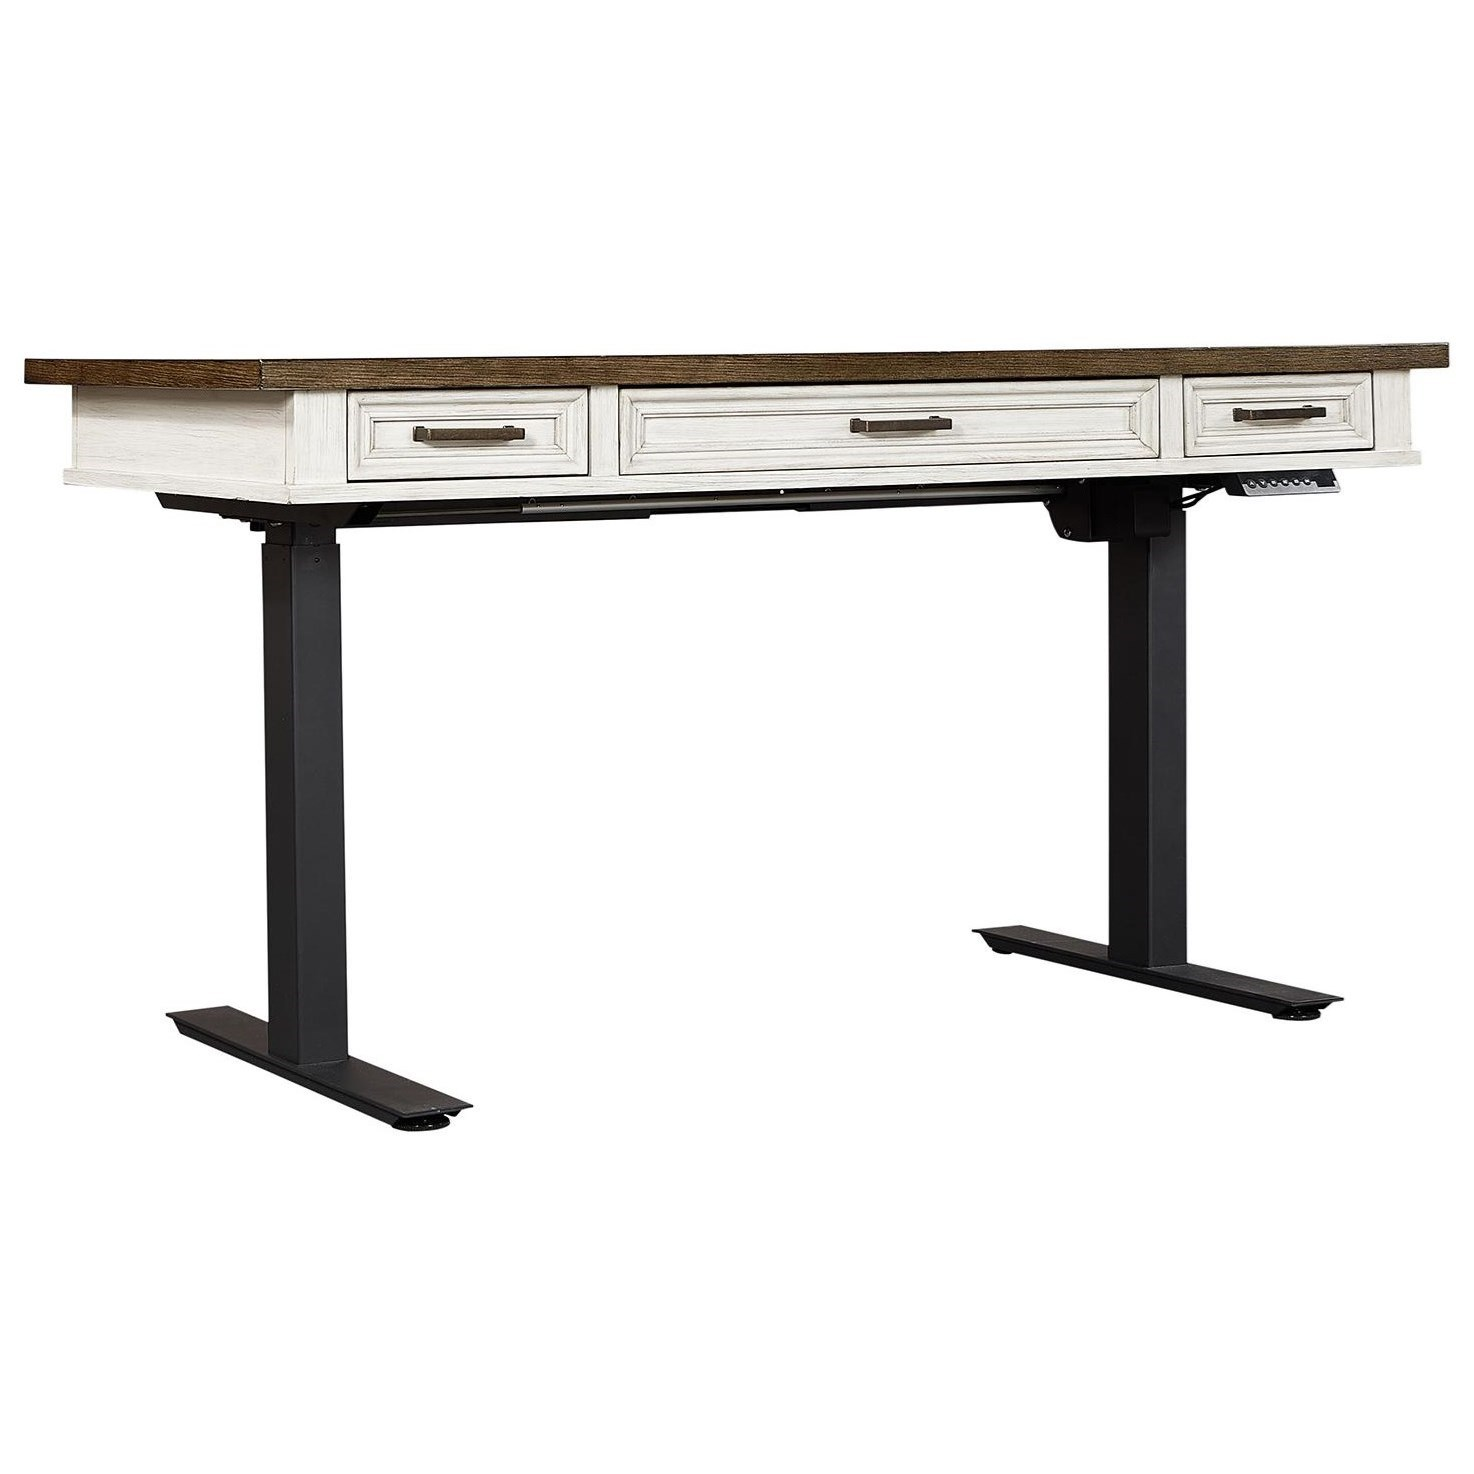 Caraway Lift Top Desk by Aspenhome at Stoney Creek Furniture